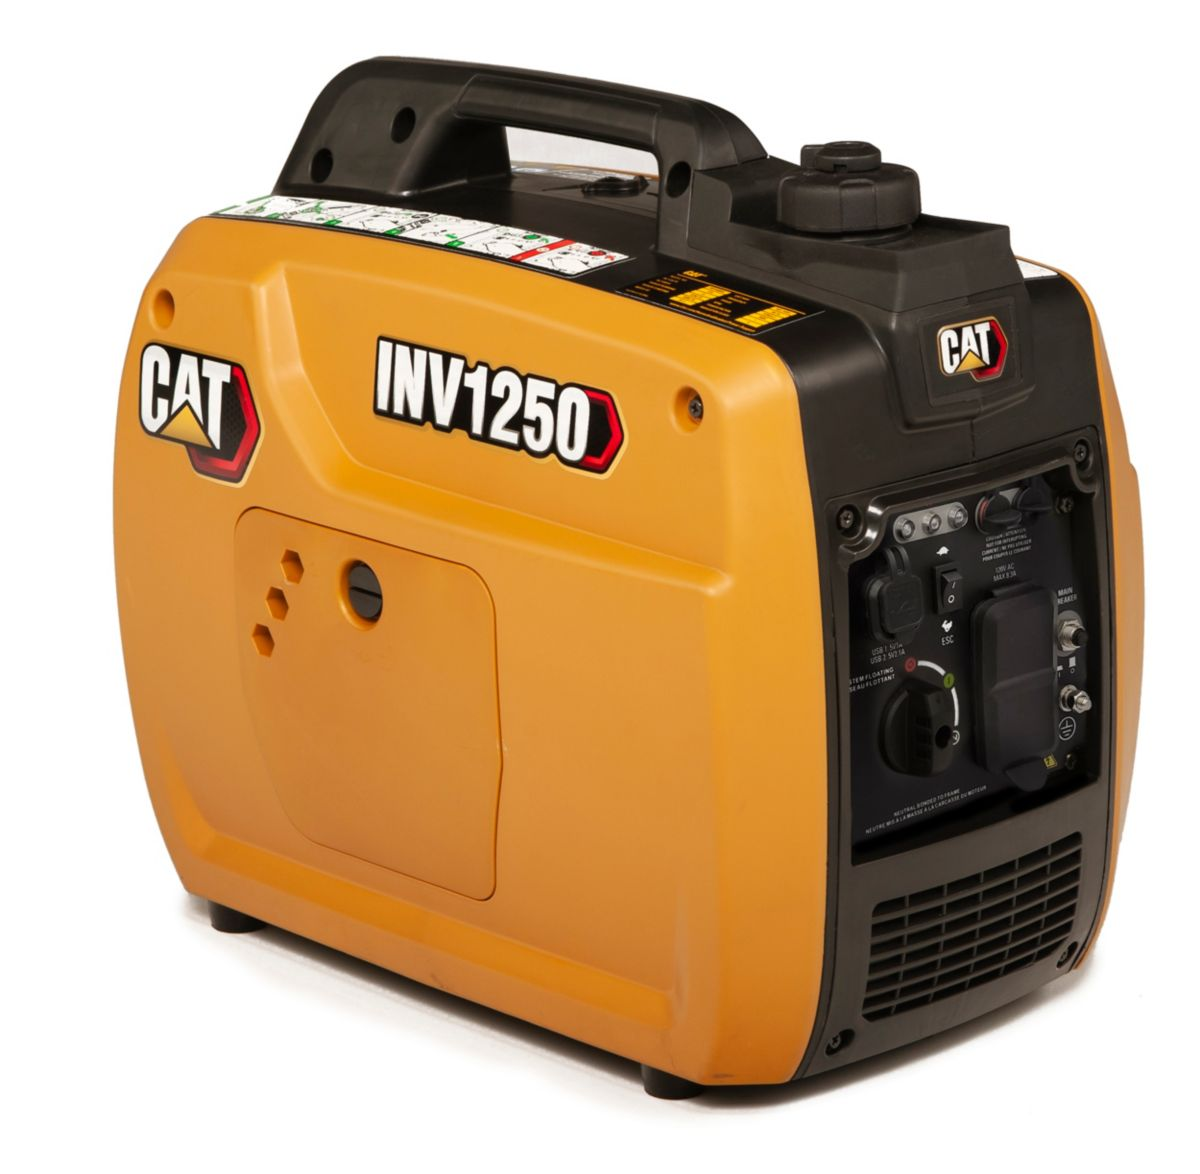 1000 watt inverter generator Cat® INV1250 quiet generator